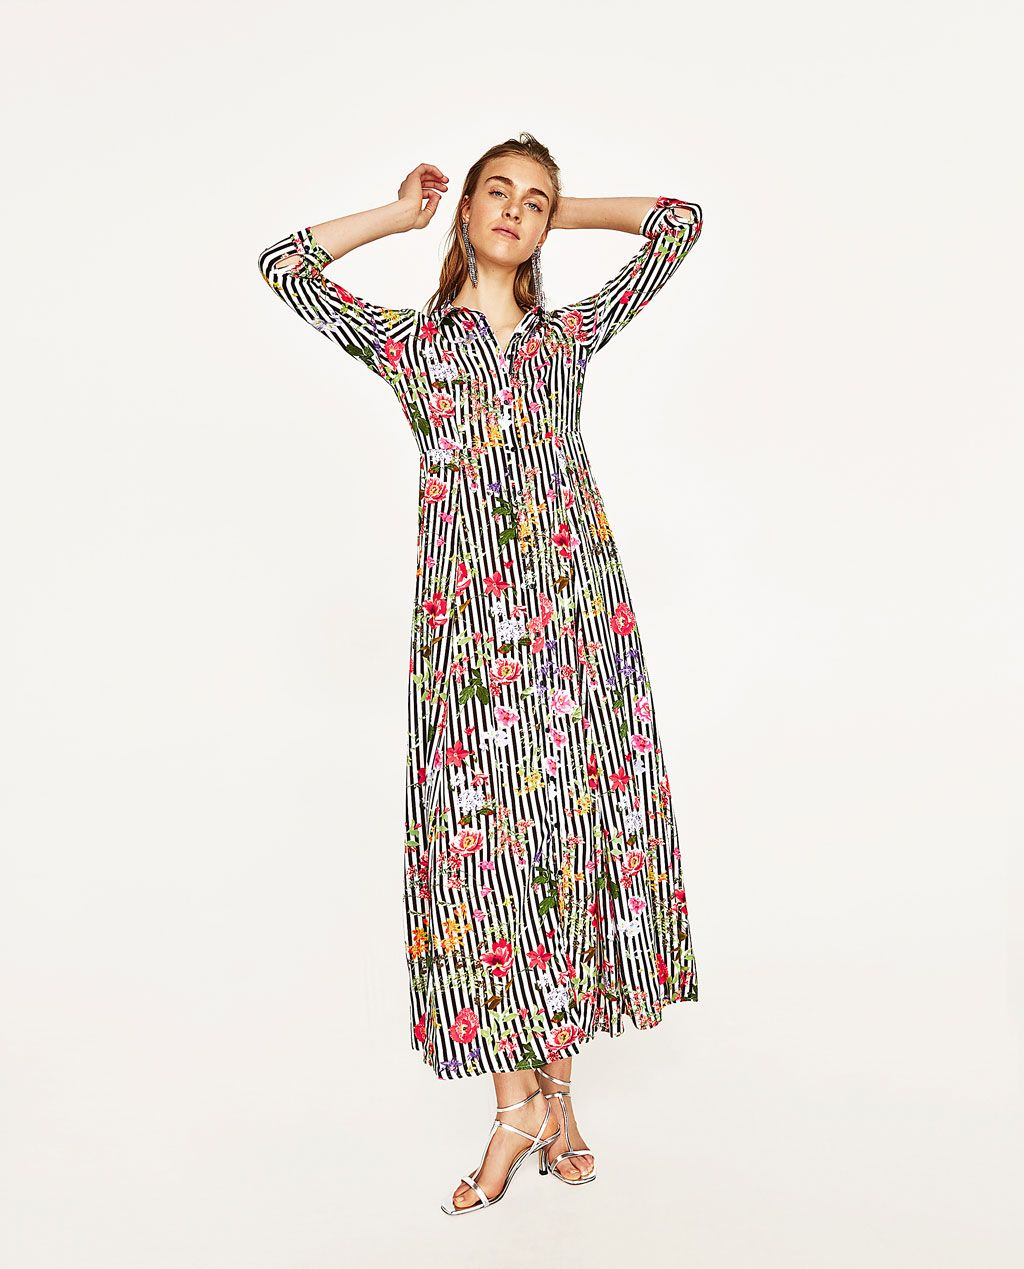 b42aeb3064c3 Image 1 of LONG STRIPED AND FLORAL PRINT DRESS from Zara | Fashion ...